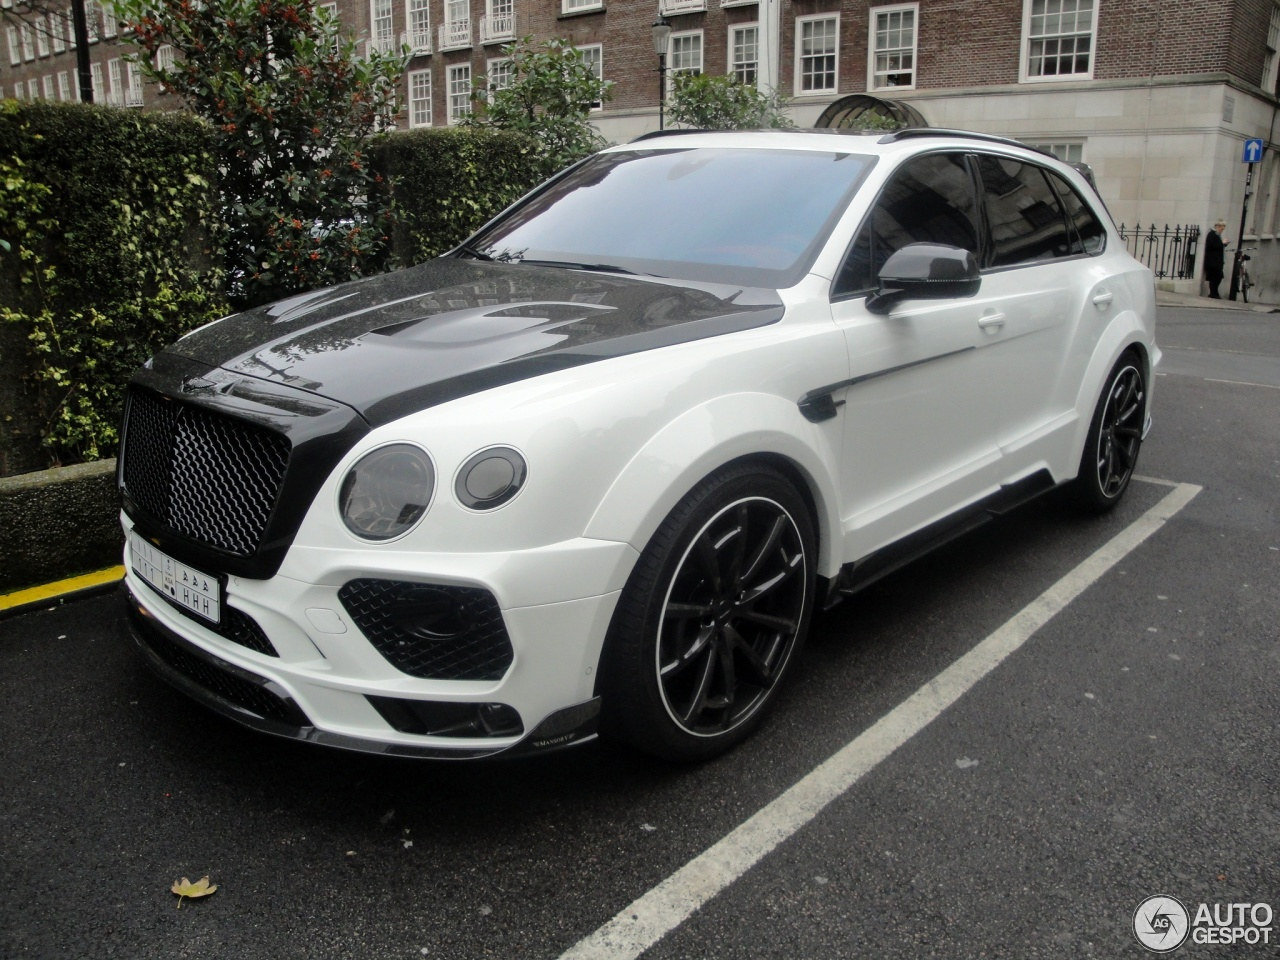 Bentley Mansory Bentayga - 18 November 2016 - Autogespot